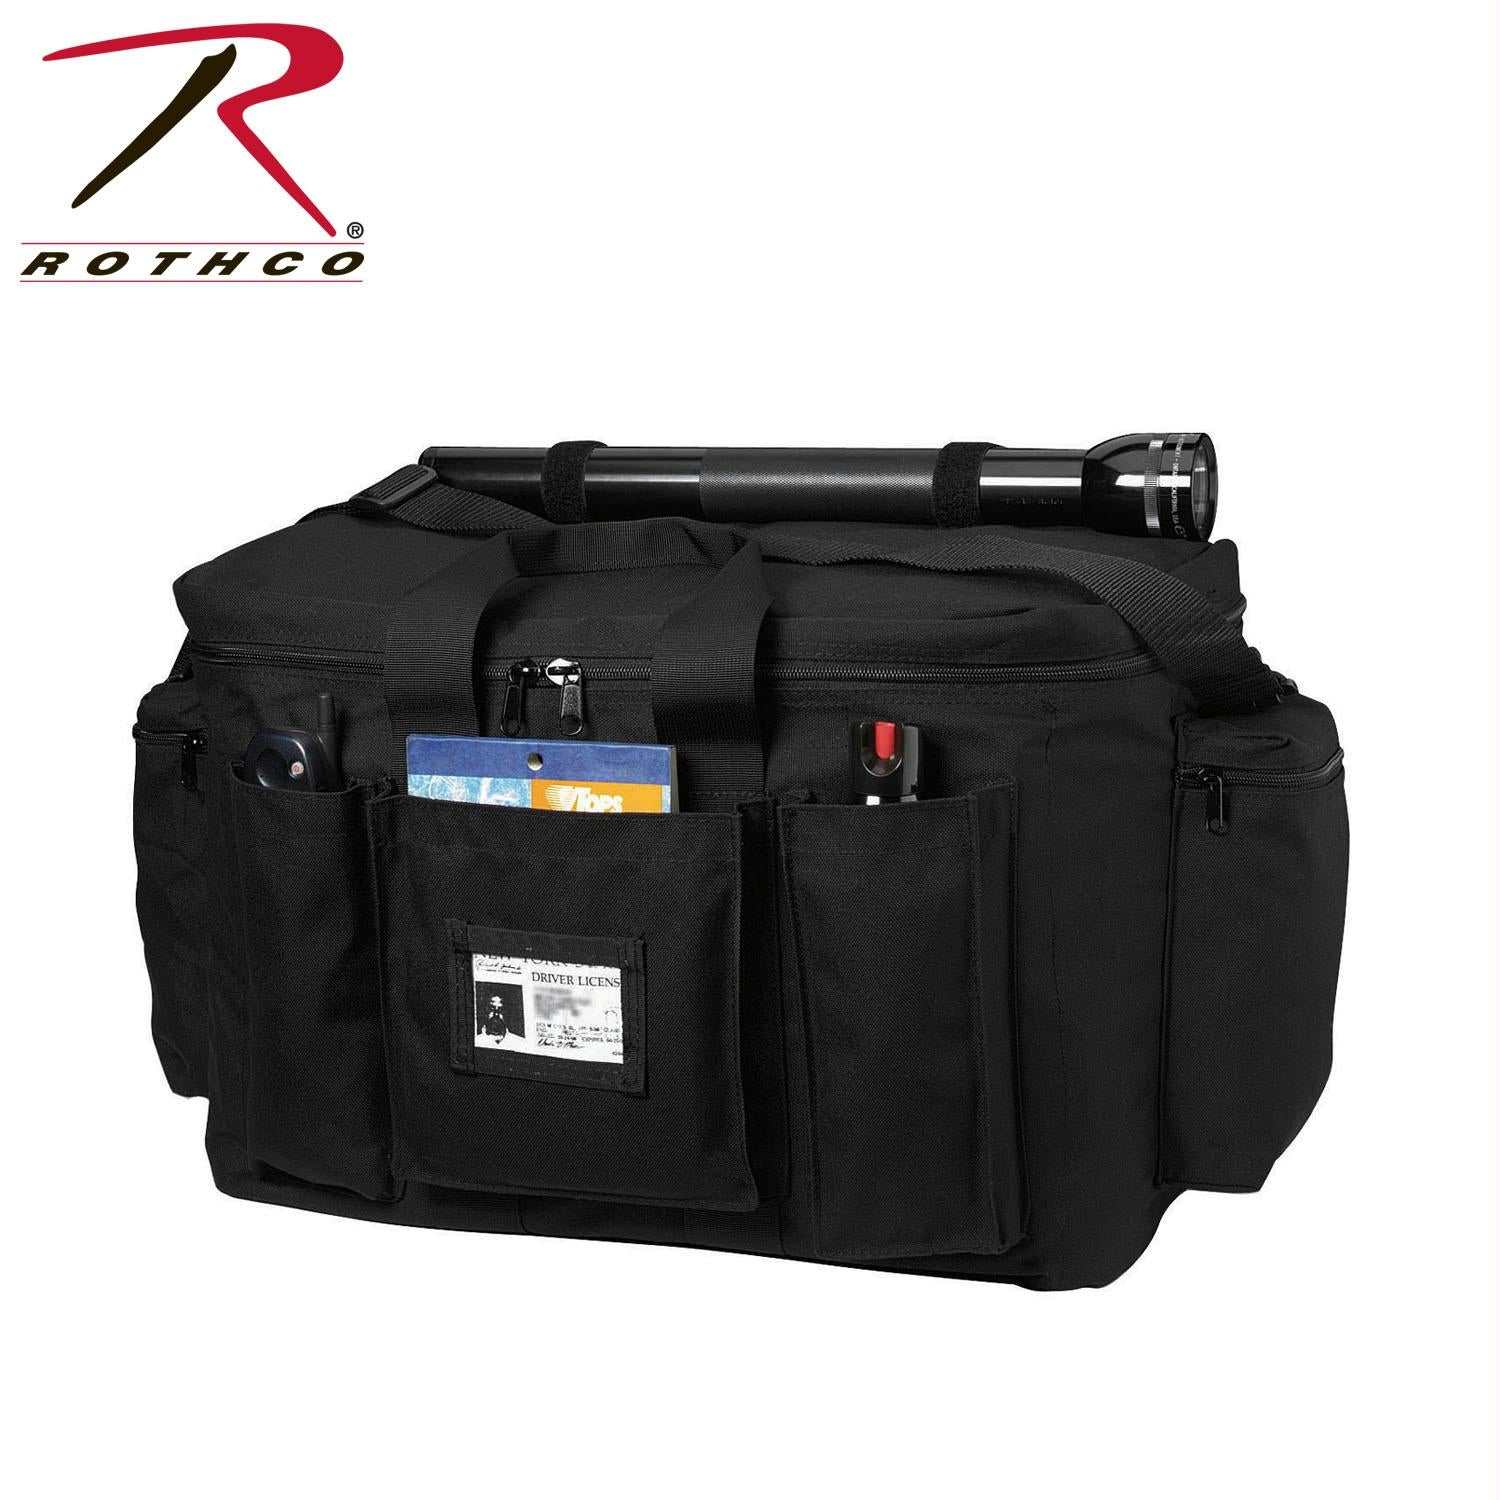 Rothco Black Police Equipment Bag